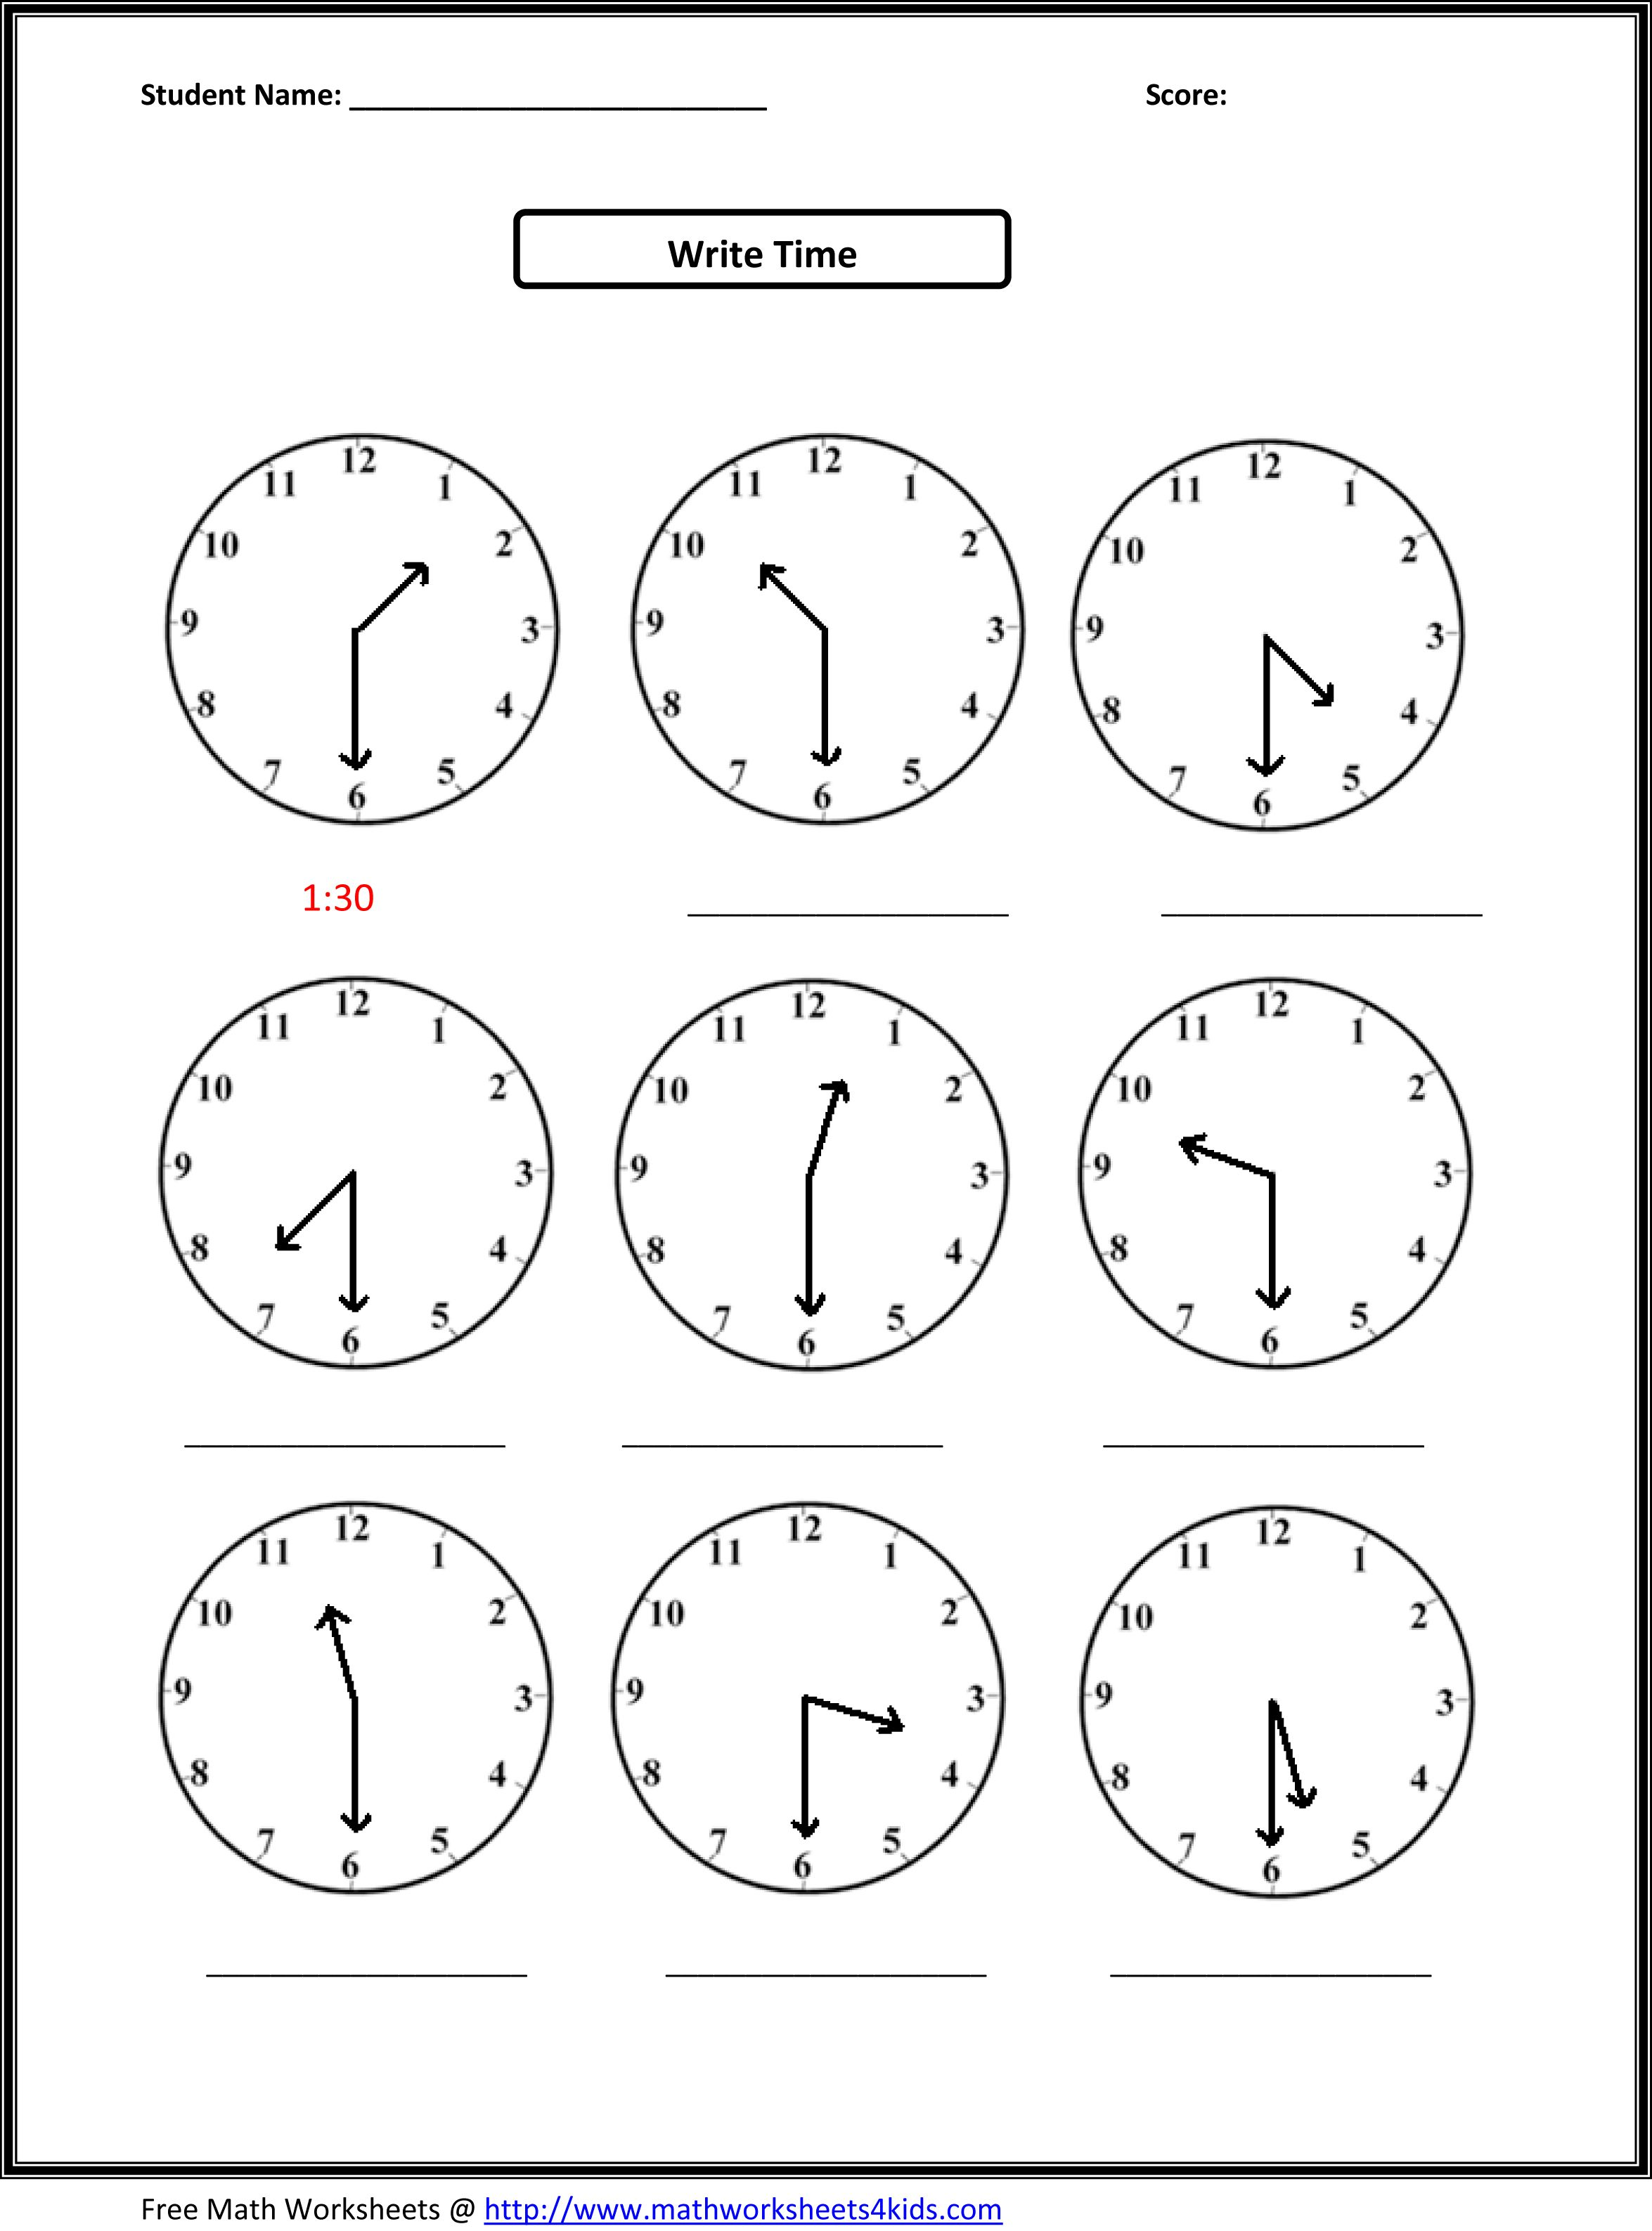 Weirdmailus  Unusual Worksheet On Time For Grade   Reocurent With Inspiring Free Printable Telling Time Worksheets Nd Grade  Reocurent With Adorable Letter Tracing Worksheets For Preschoolers Also Printable Solar System Worksheets In Addition Plot Points Worksheet And Rd Grade Math Word Problems Worksheets Printable As Well As Language Arts Th Grade Worksheets Additionally Musical Instrument Worksheets From Reocurentcom With Weirdmailus  Inspiring Worksheet On Time For Grade   Reocurent With Adorable Free Printable Telling Time Worksheets Nd Grade  Reocurent And Unusual Letter Tracing Worksheets For Preschoolers Also Printable Solar System Worksheets In Addition Plot Points Worksheet From Reocurentcom